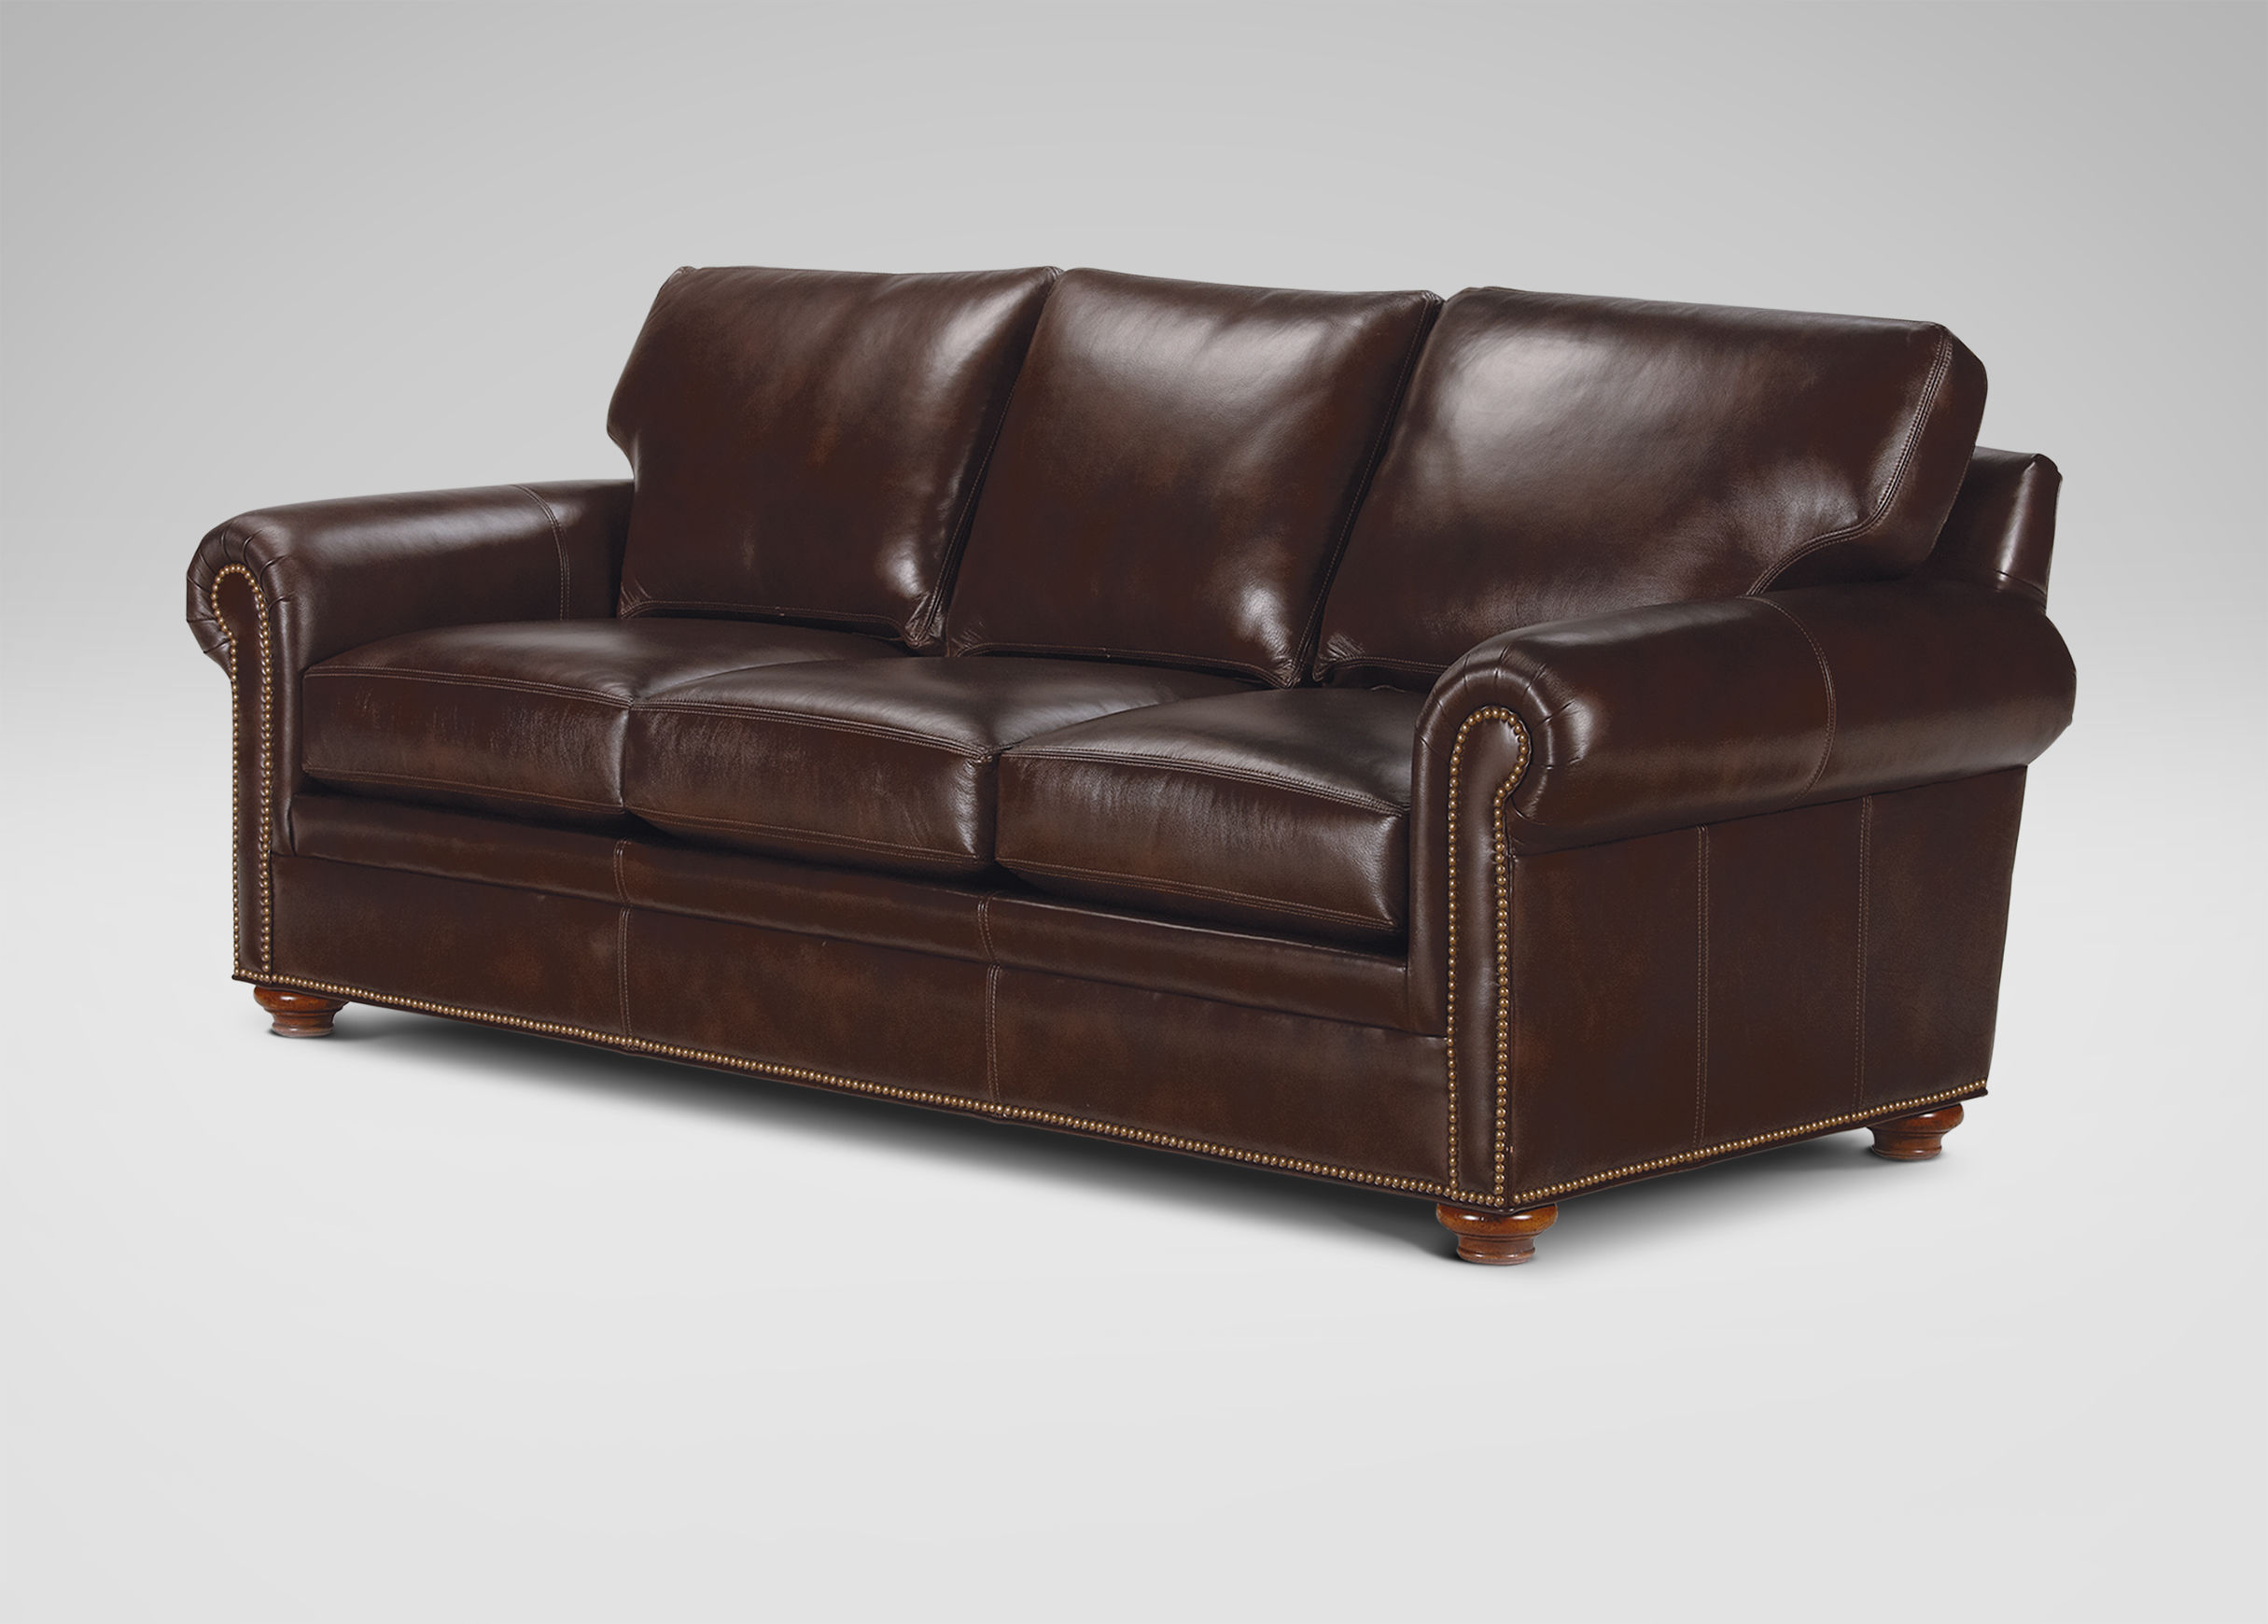 Ethan Allen Leather Sofas Ethan Allen Brown Leather Sofa